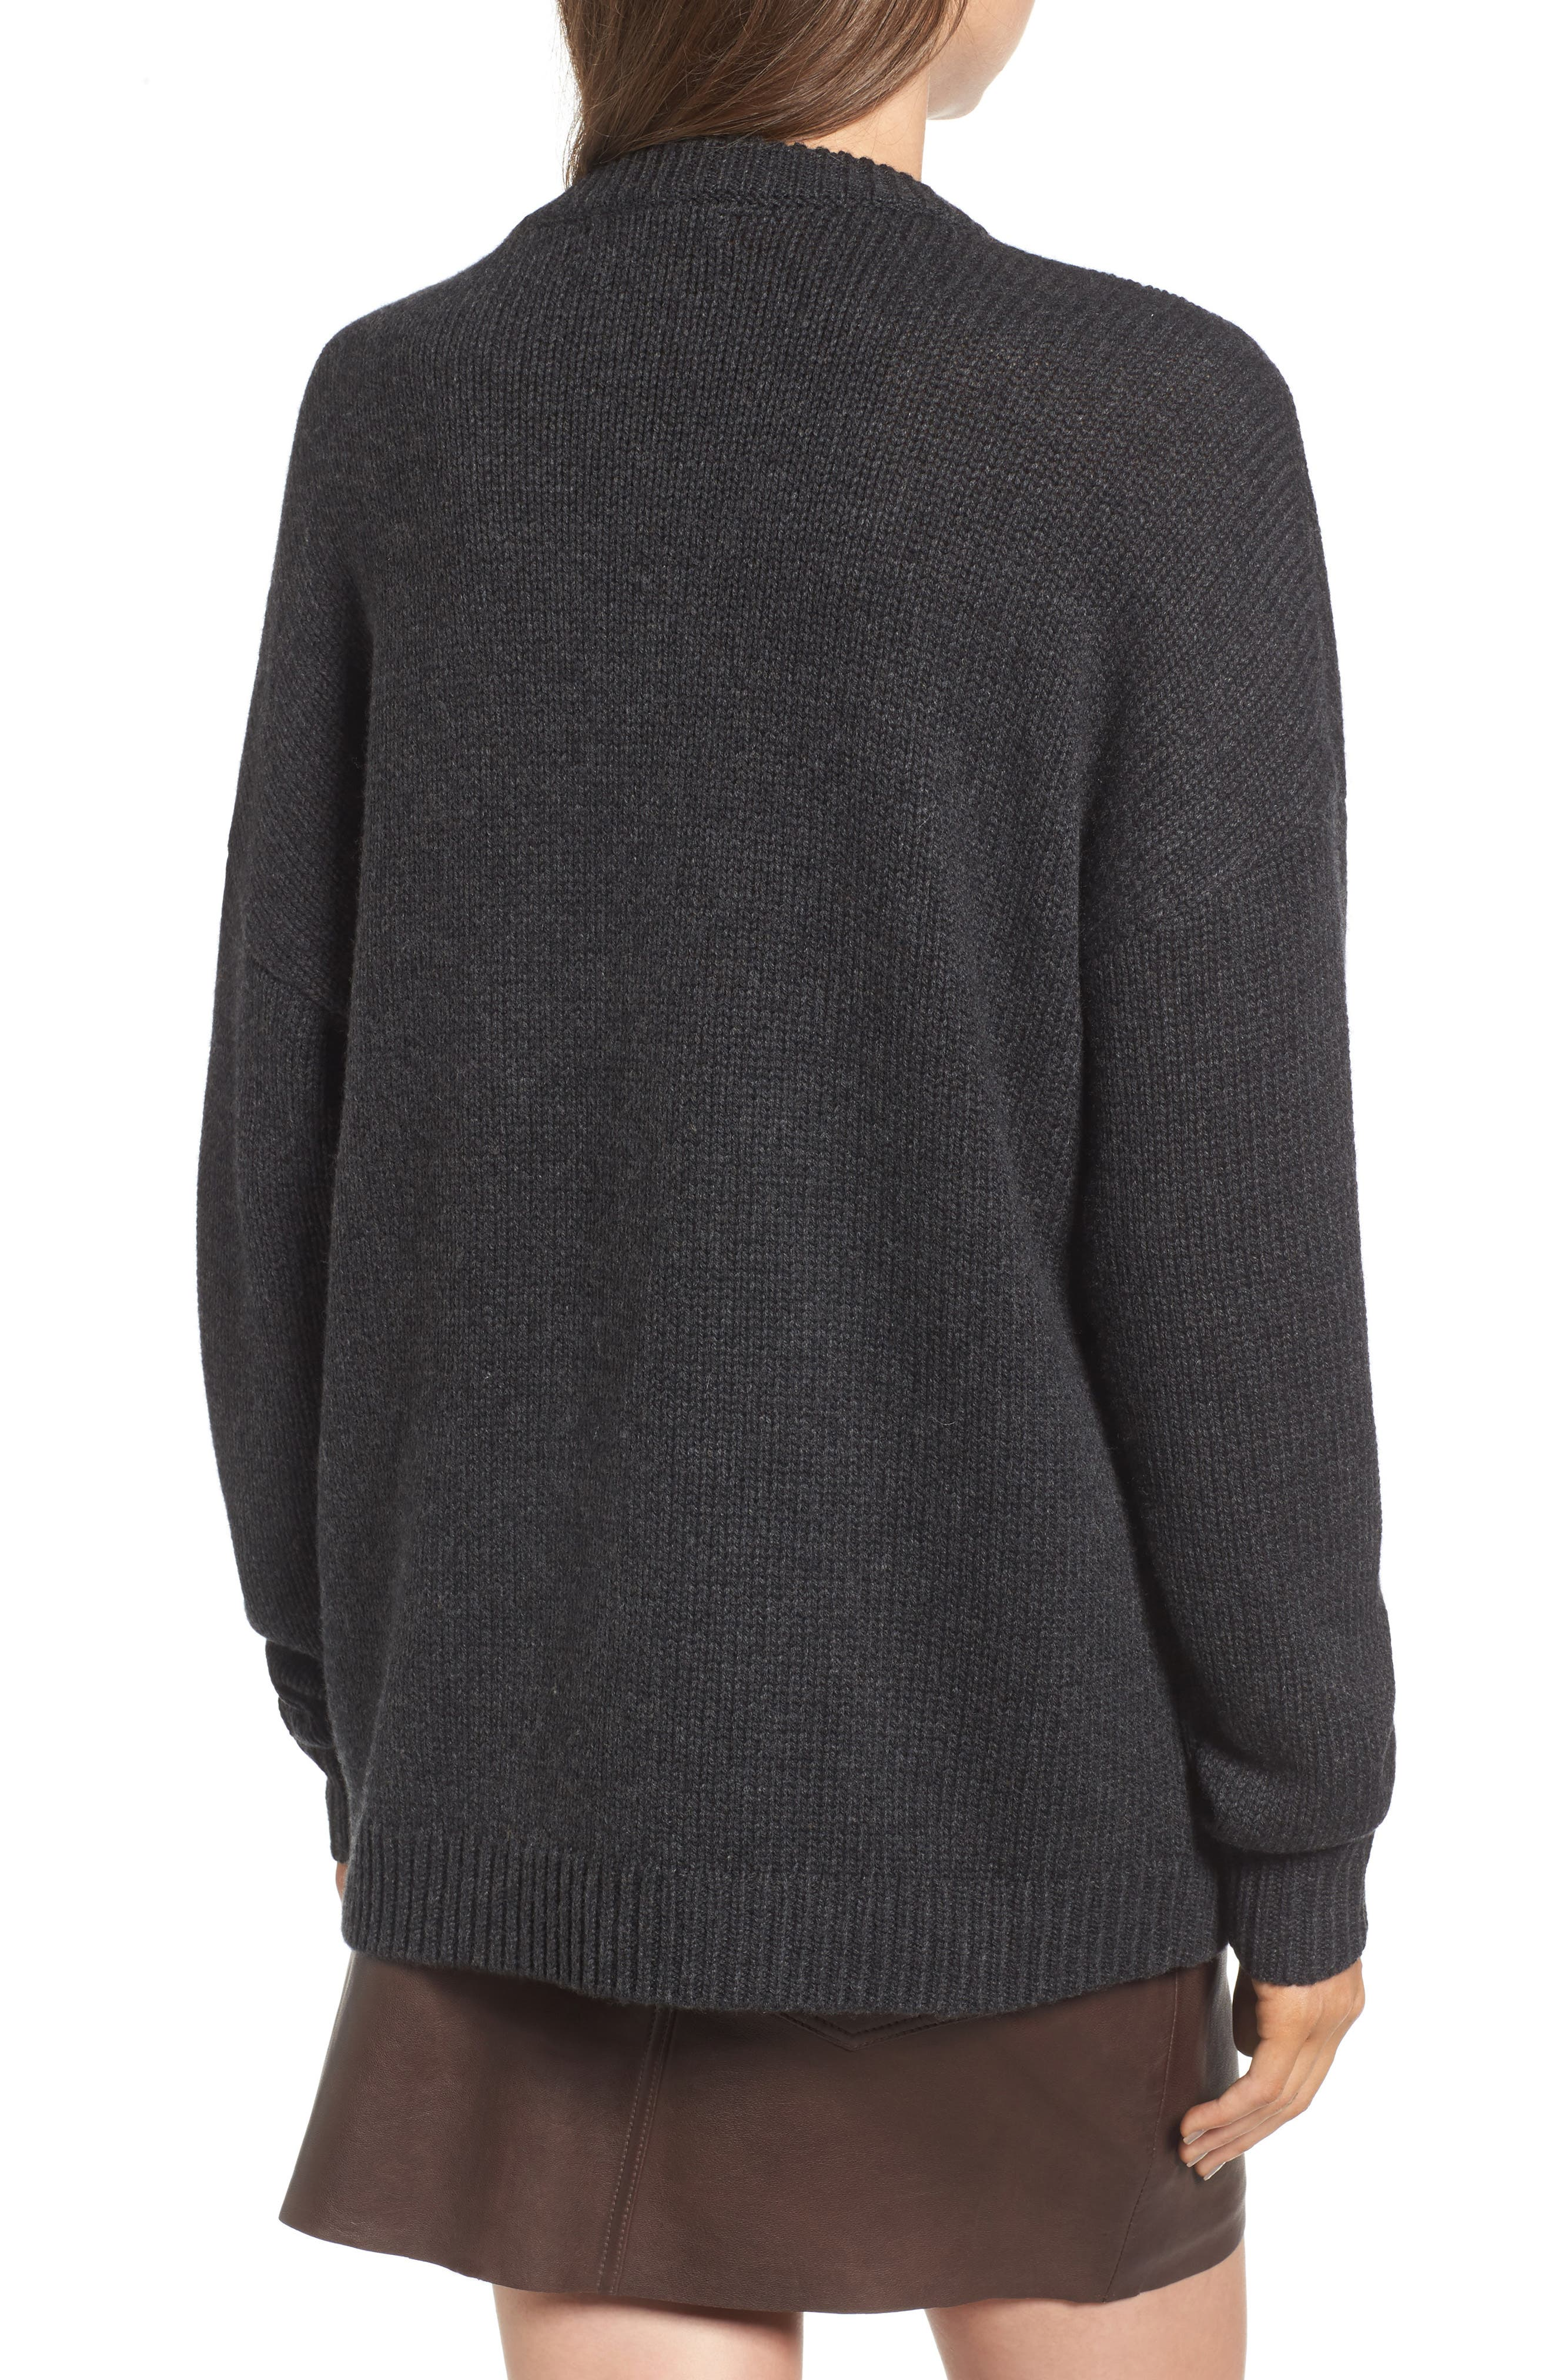 x Something Navy Crewneck Sweater,                             Alternate thumbnail 7, color,